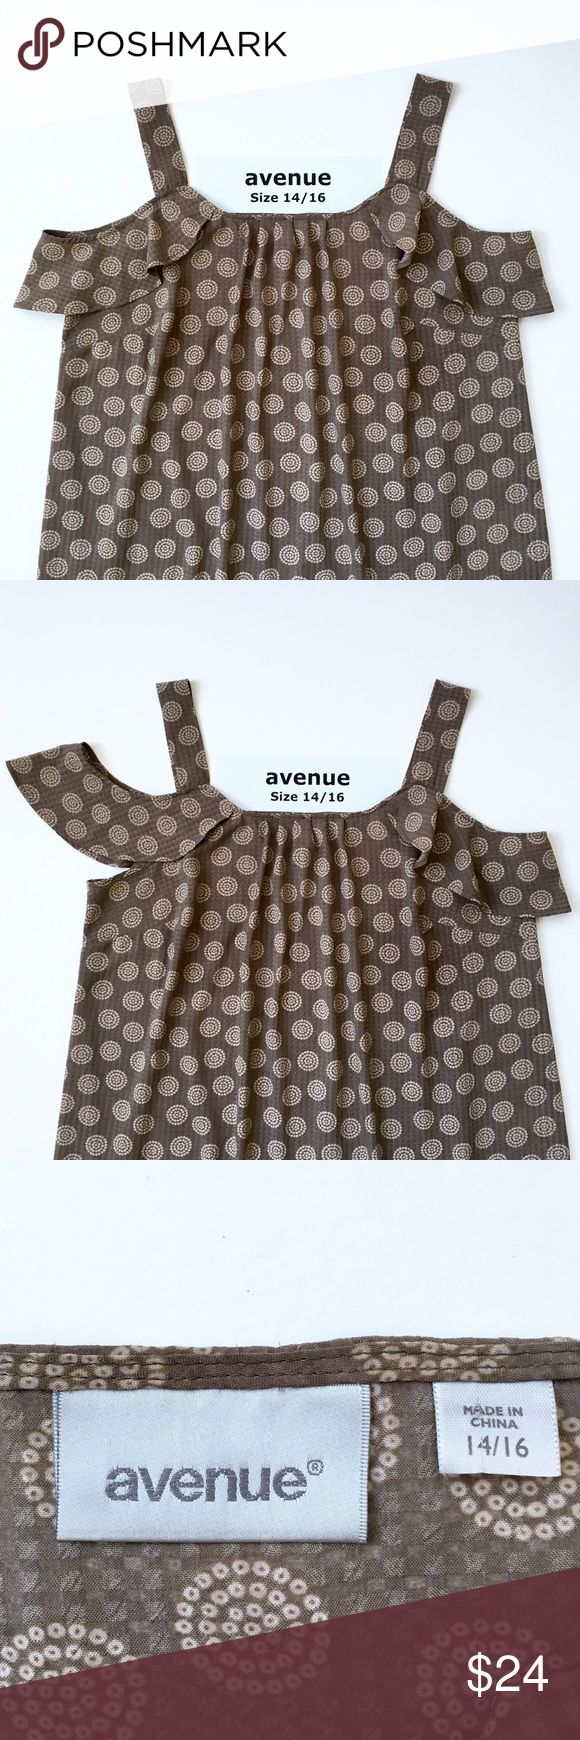 Avenue Silky Poly Tank w/Open Shoulder Drop Slv❤️ Brand: Avenue. Size: 14/16. 100% polyester. Circle medallion print. Colors: mushroom and tan. Designed with darts. Chest: 22 inches across measured flat. Length: 28.5 inches from top of shoulder strap to hem. Strap width is 1 3/4 inches wide. This item is used and in very good condition. Flowy. Light weight. Feminine. Cute and sexy. Effortless.❤️ Avenue Tops Tunics